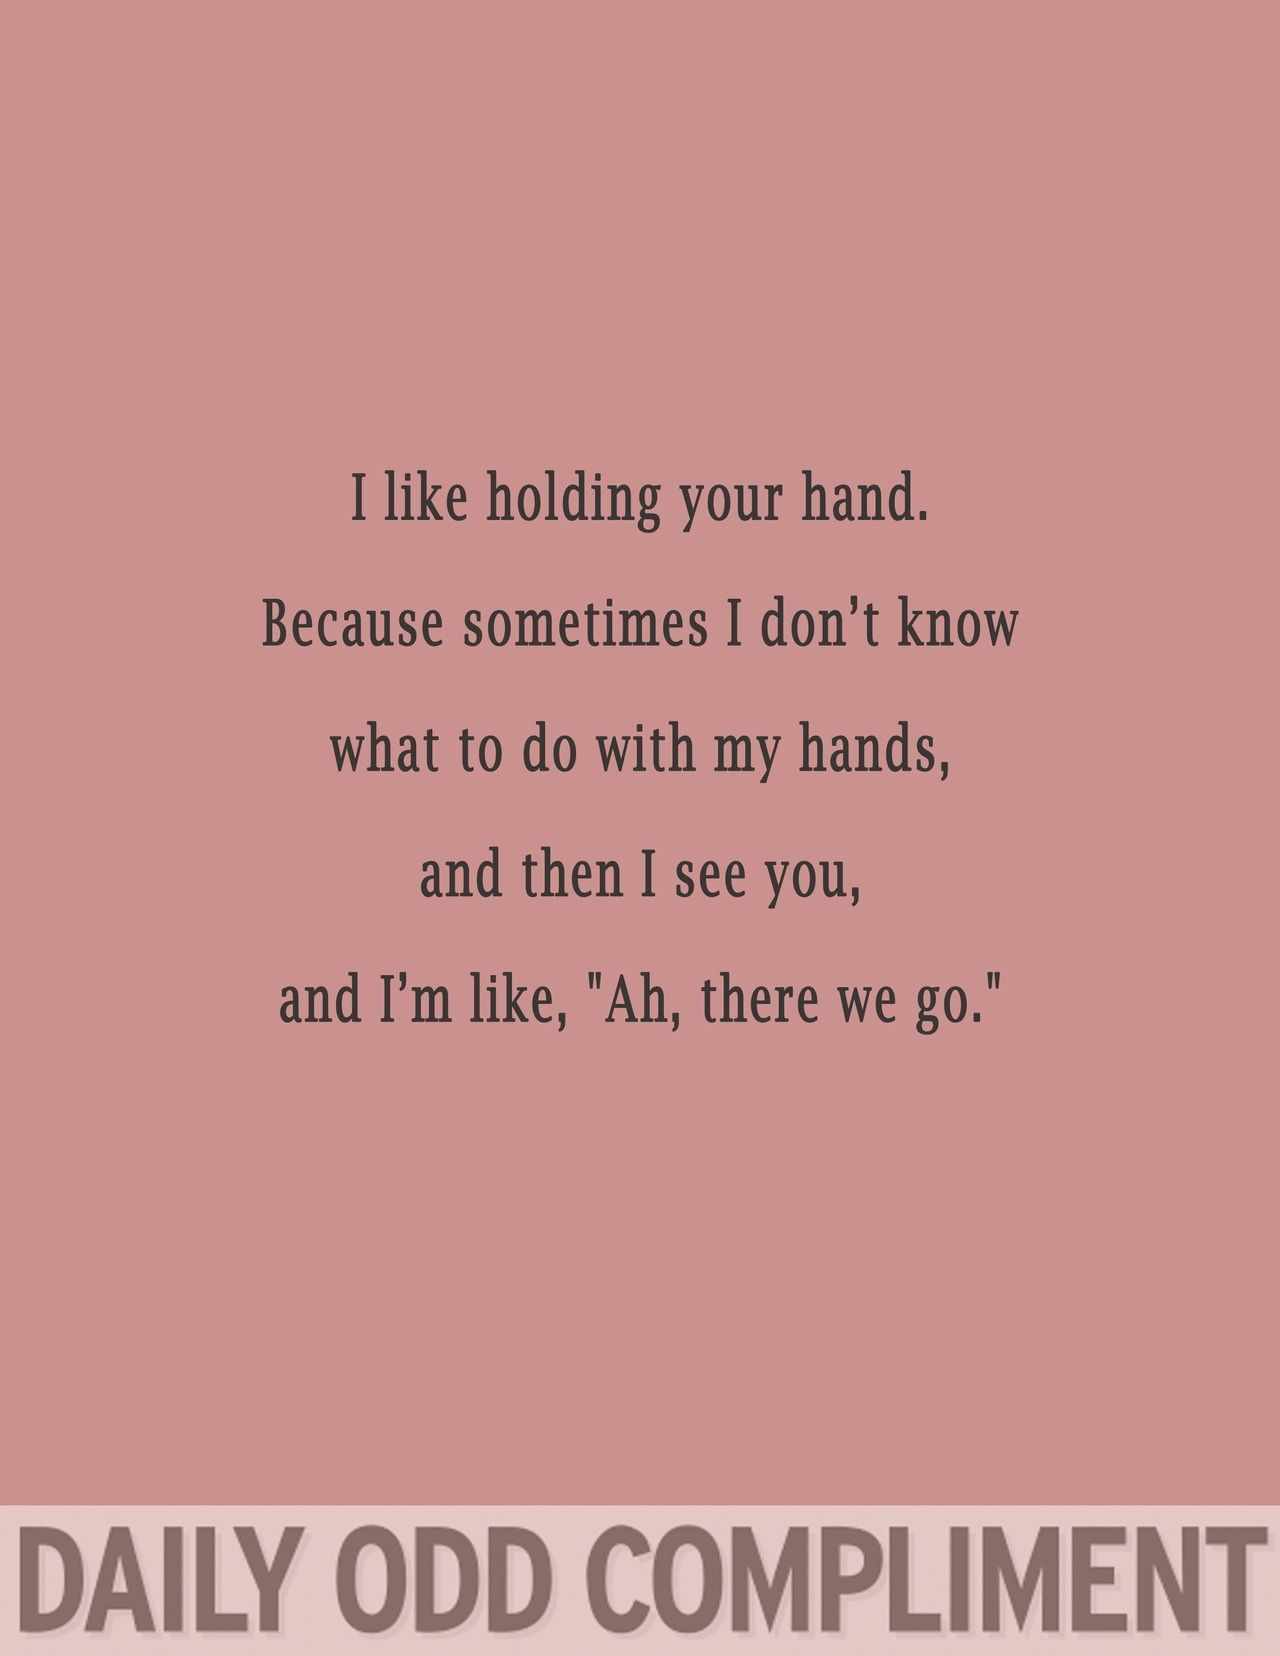 I Like Holding Your Hand Because Sometimes I Don T Know What To Do With My Hands And Then I See You And I M Li Daily Odd Compliment Odd Compliment Daily Odd